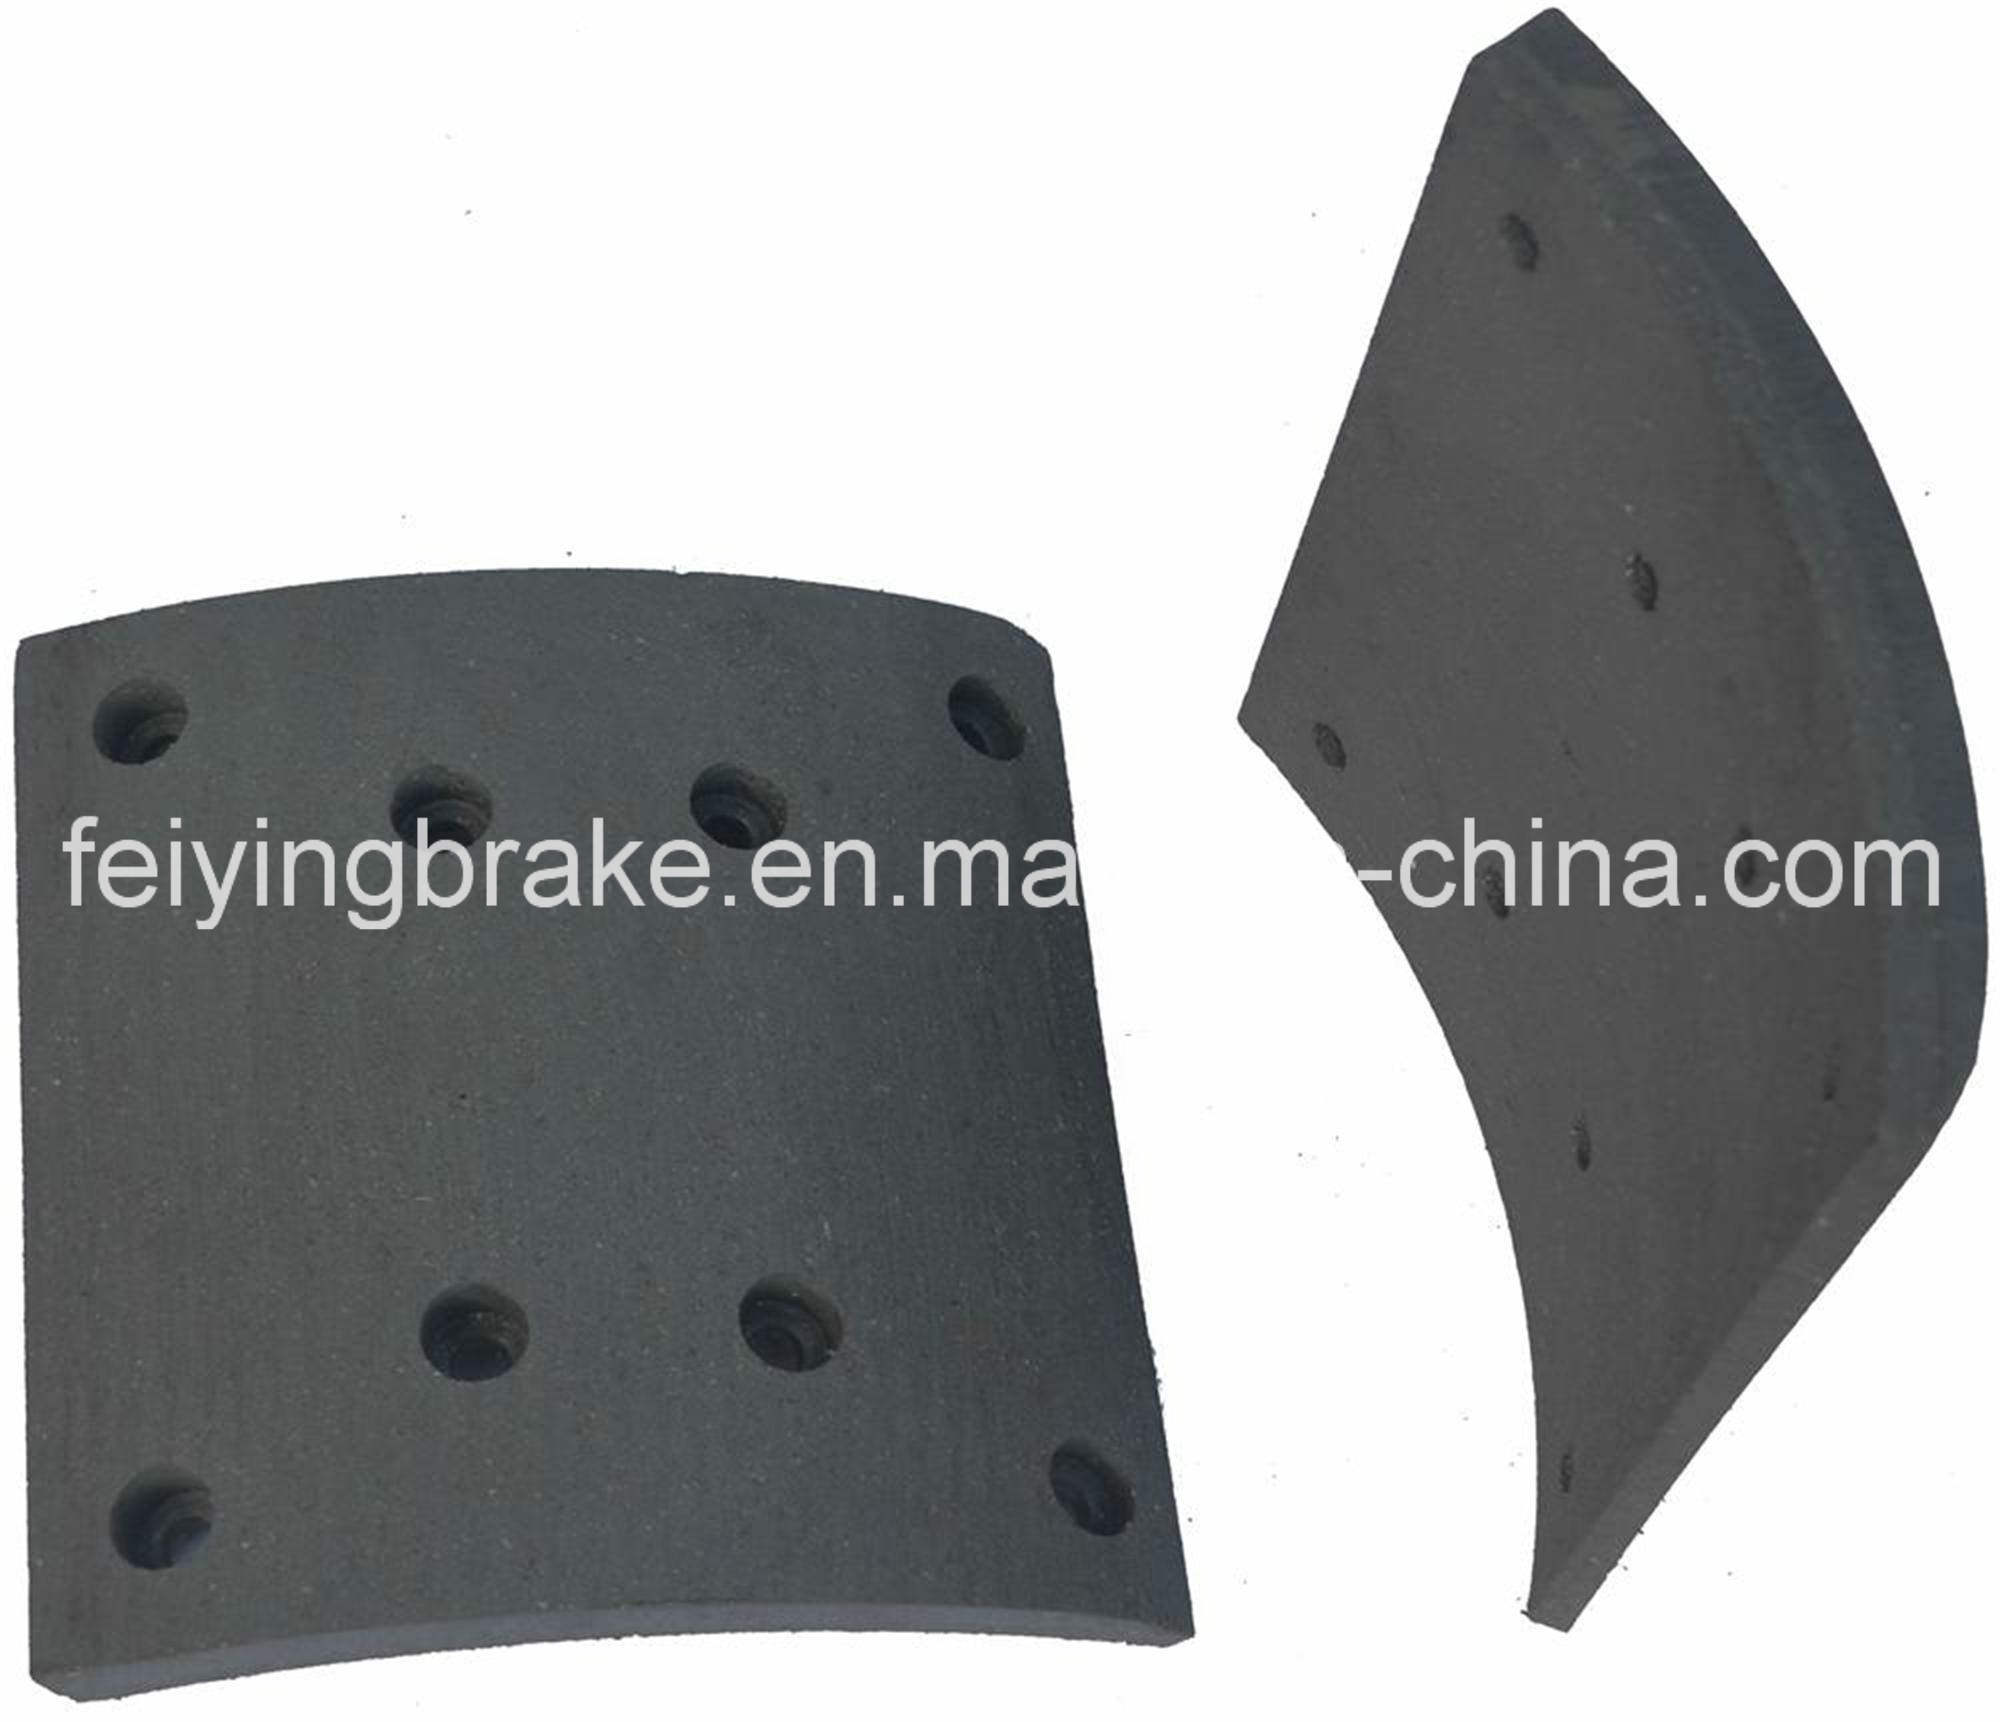 Brake Lining for European Truck (WVA: 19487, BFMC: MP/32/1)